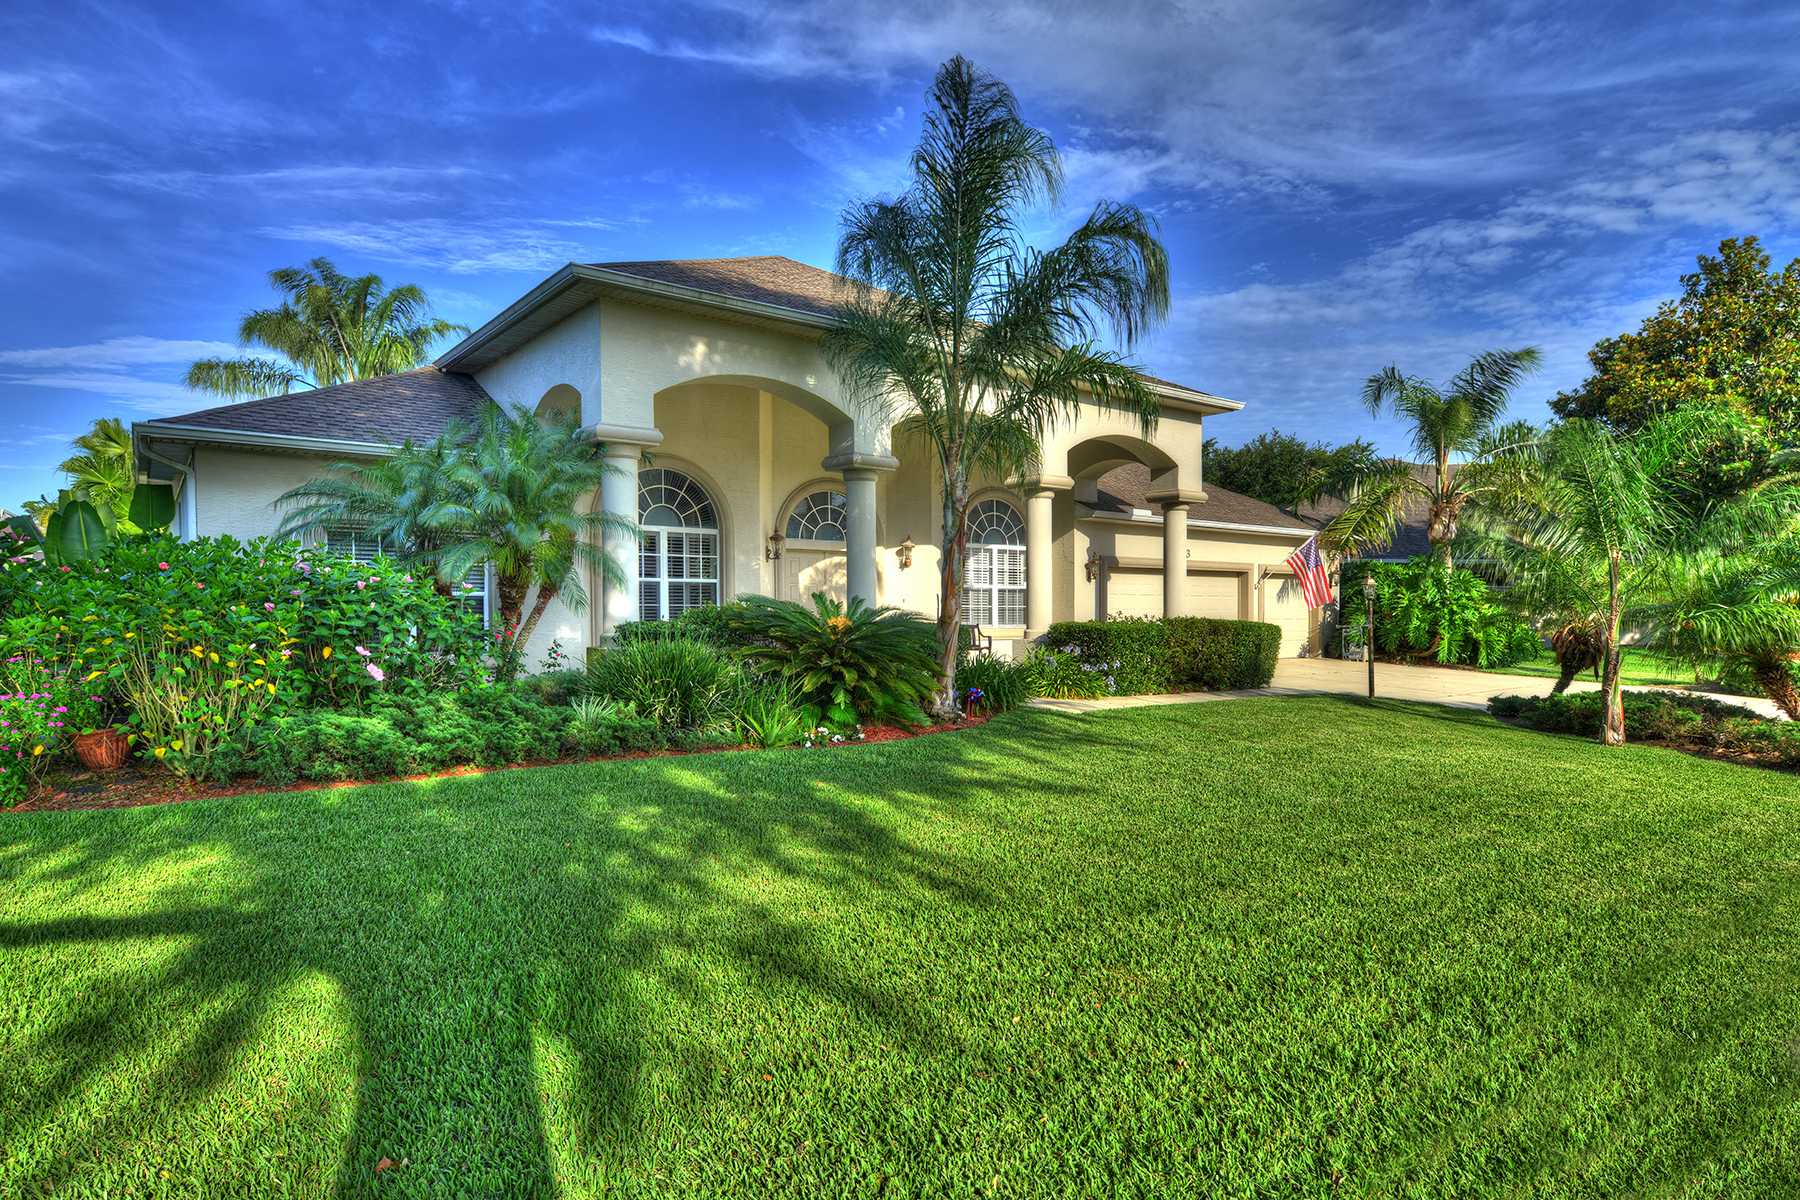 Single Family Home for Sale at SPRUCE CREEK AND THE BEACHES 6063 Sabal Crossing Ct Port Orange, Florida, 32128 United States